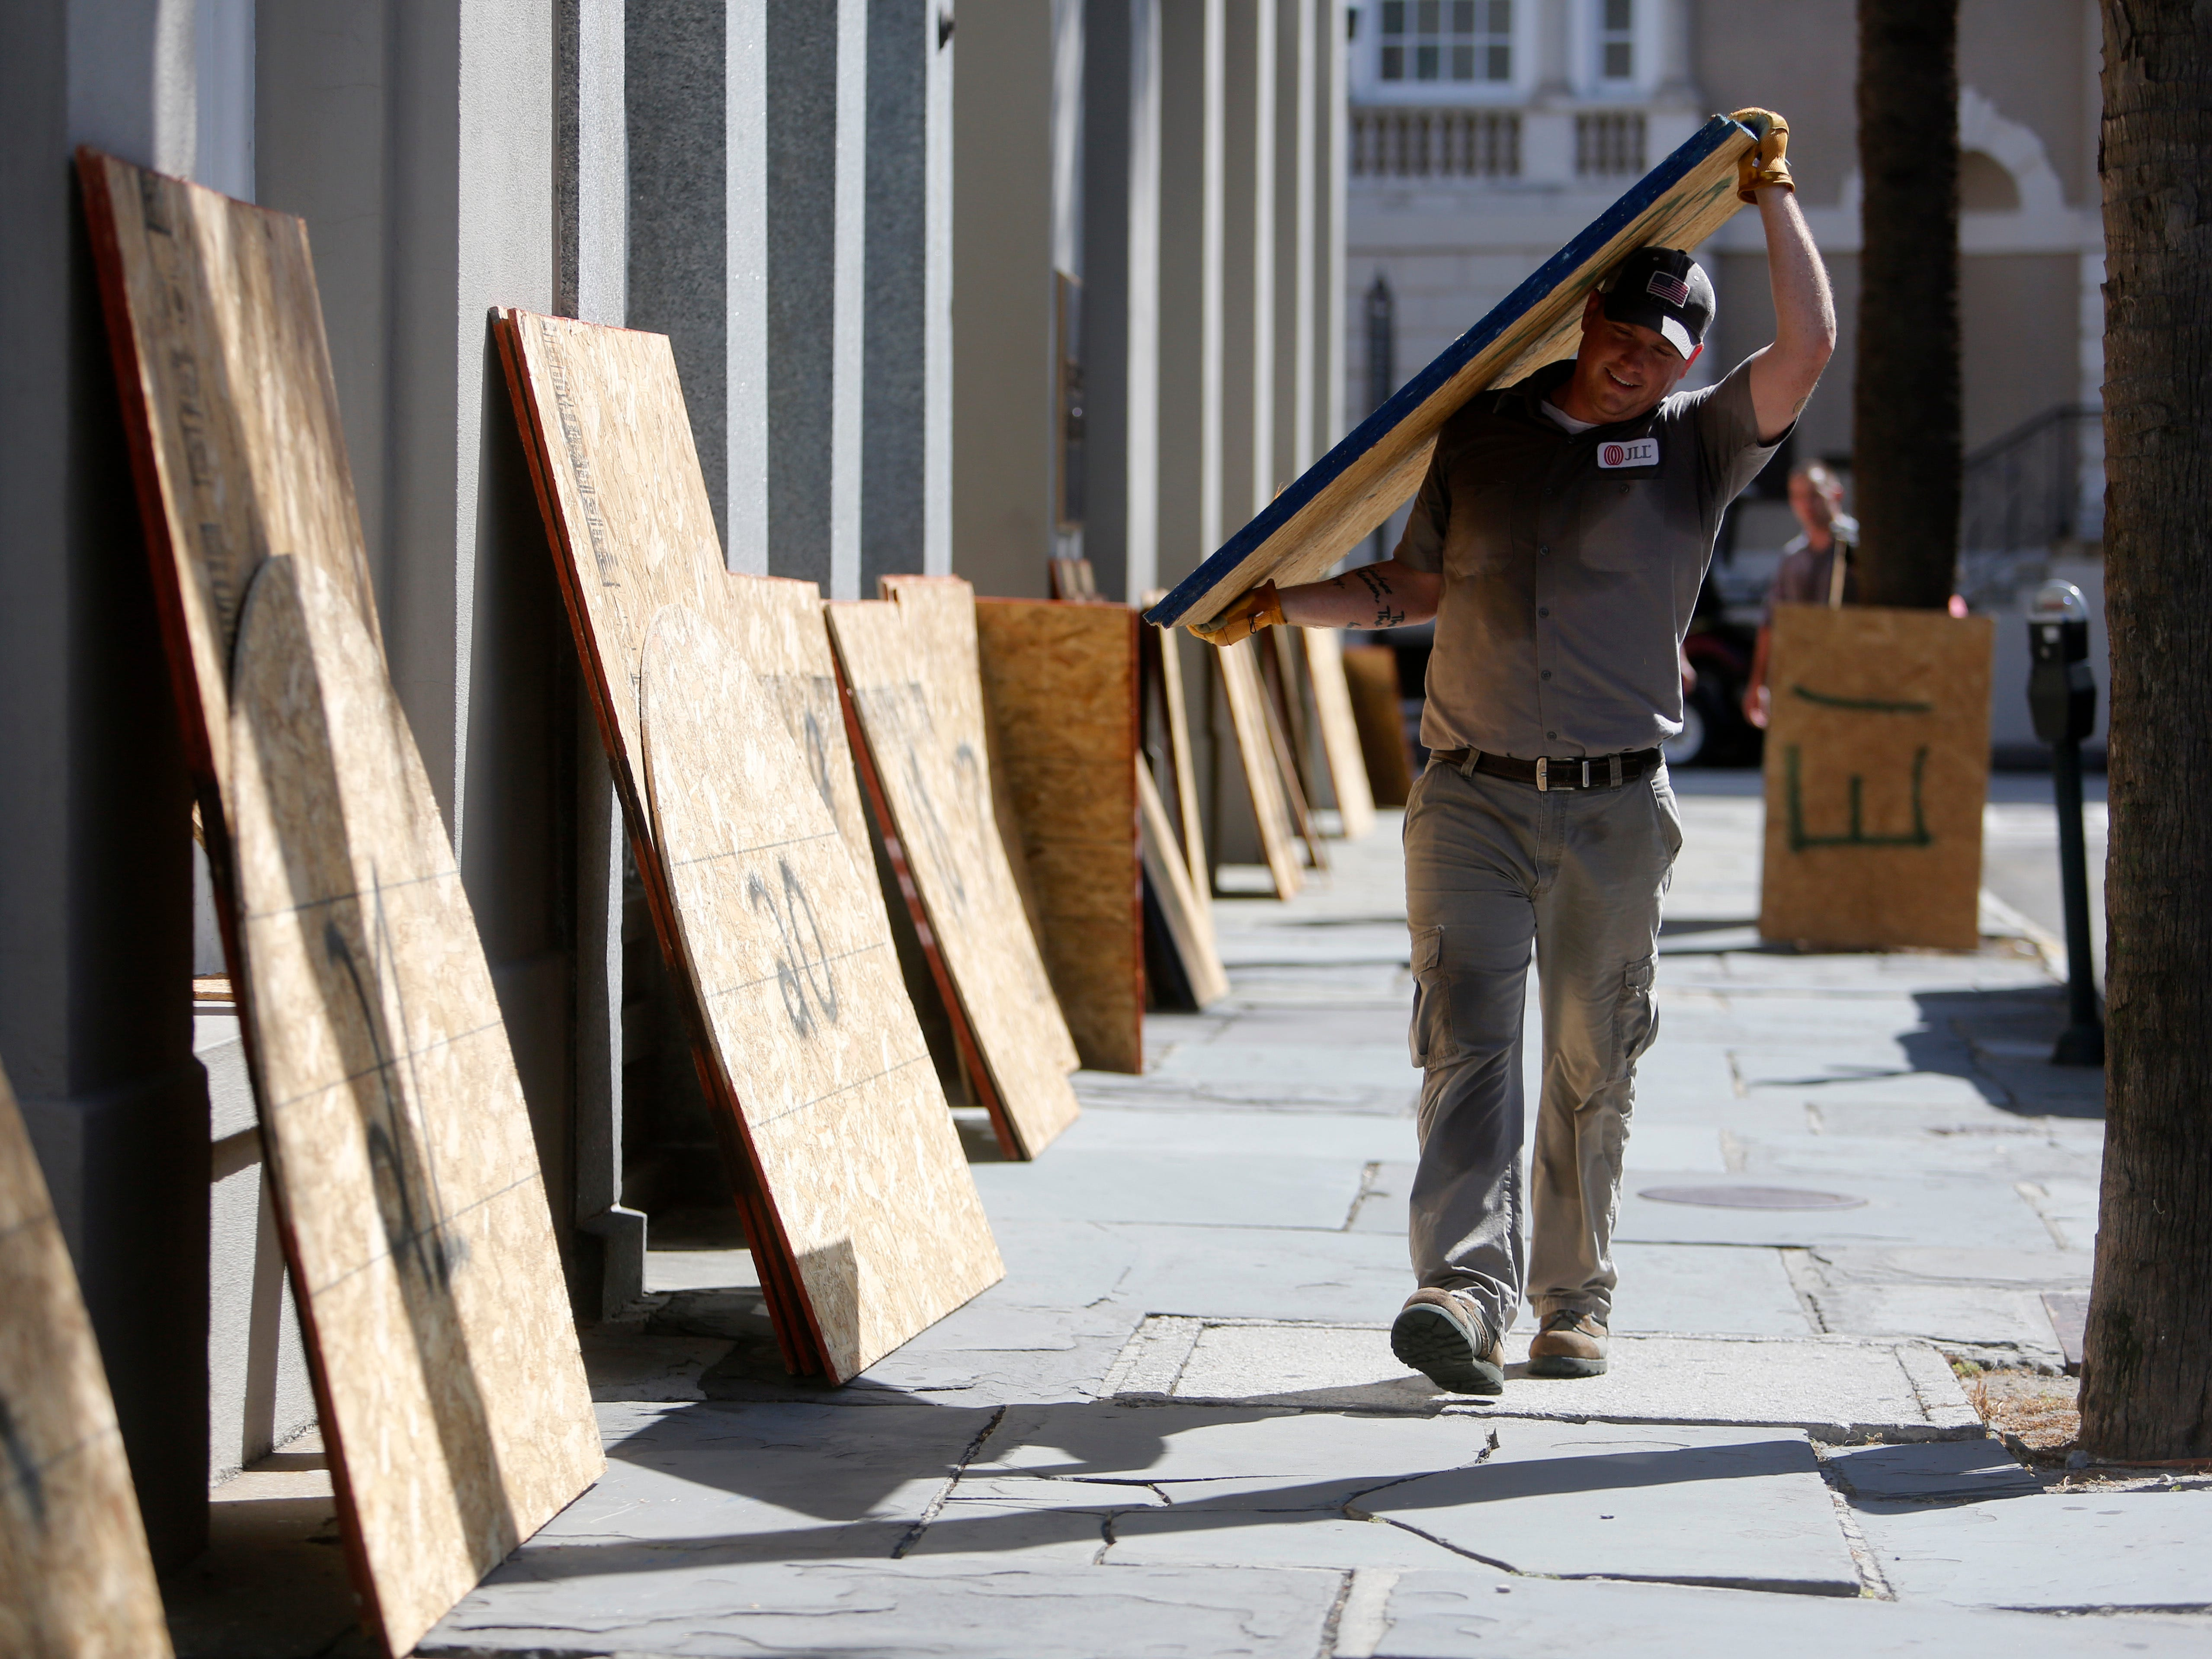 CORRECTS DATE  - Preston Guiher carries a sheet of plywood as he prepares to board up a Wells Fargo bank in preparation for Hurricane Florence in downtown Charleston, S.C., Tuesday, Sept. 11, 2018. (AP Photo/Mic Smith) ORG XMIT: SCMS101